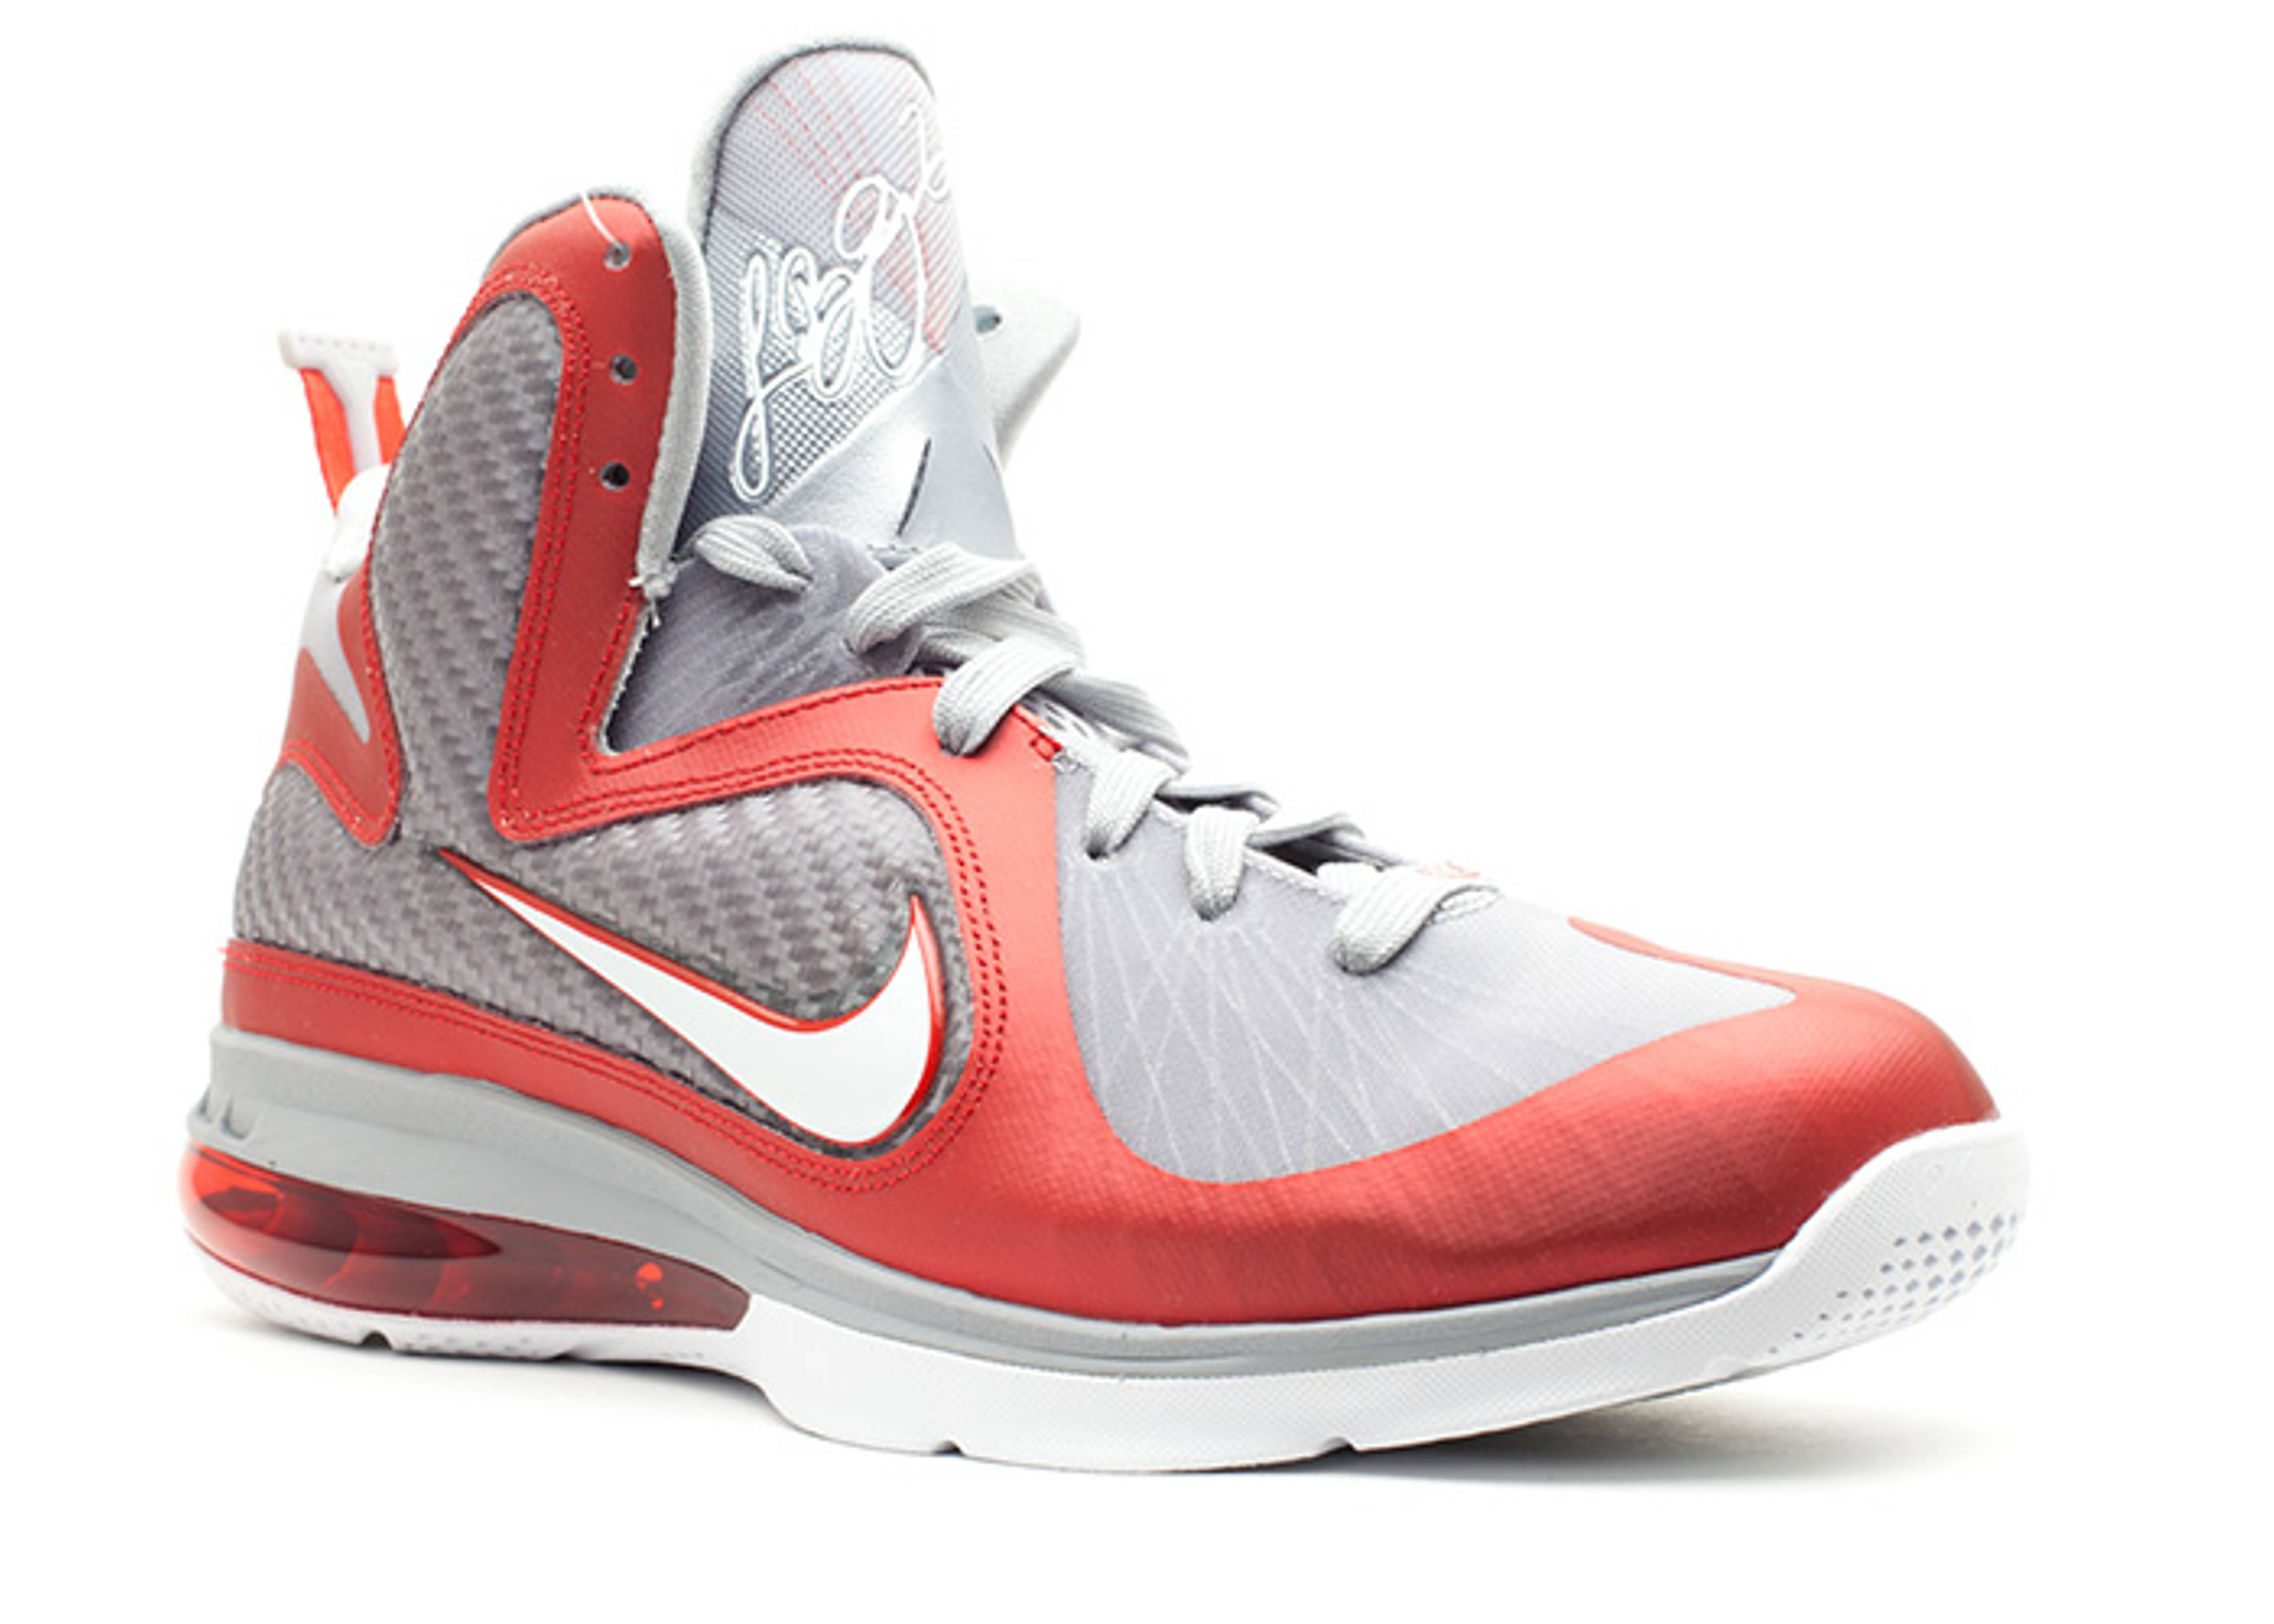 on sale 046e3 b5f1d ... Ohio State Buckeyes Color 469764-601 B Lebron 9 First Look Nike ...